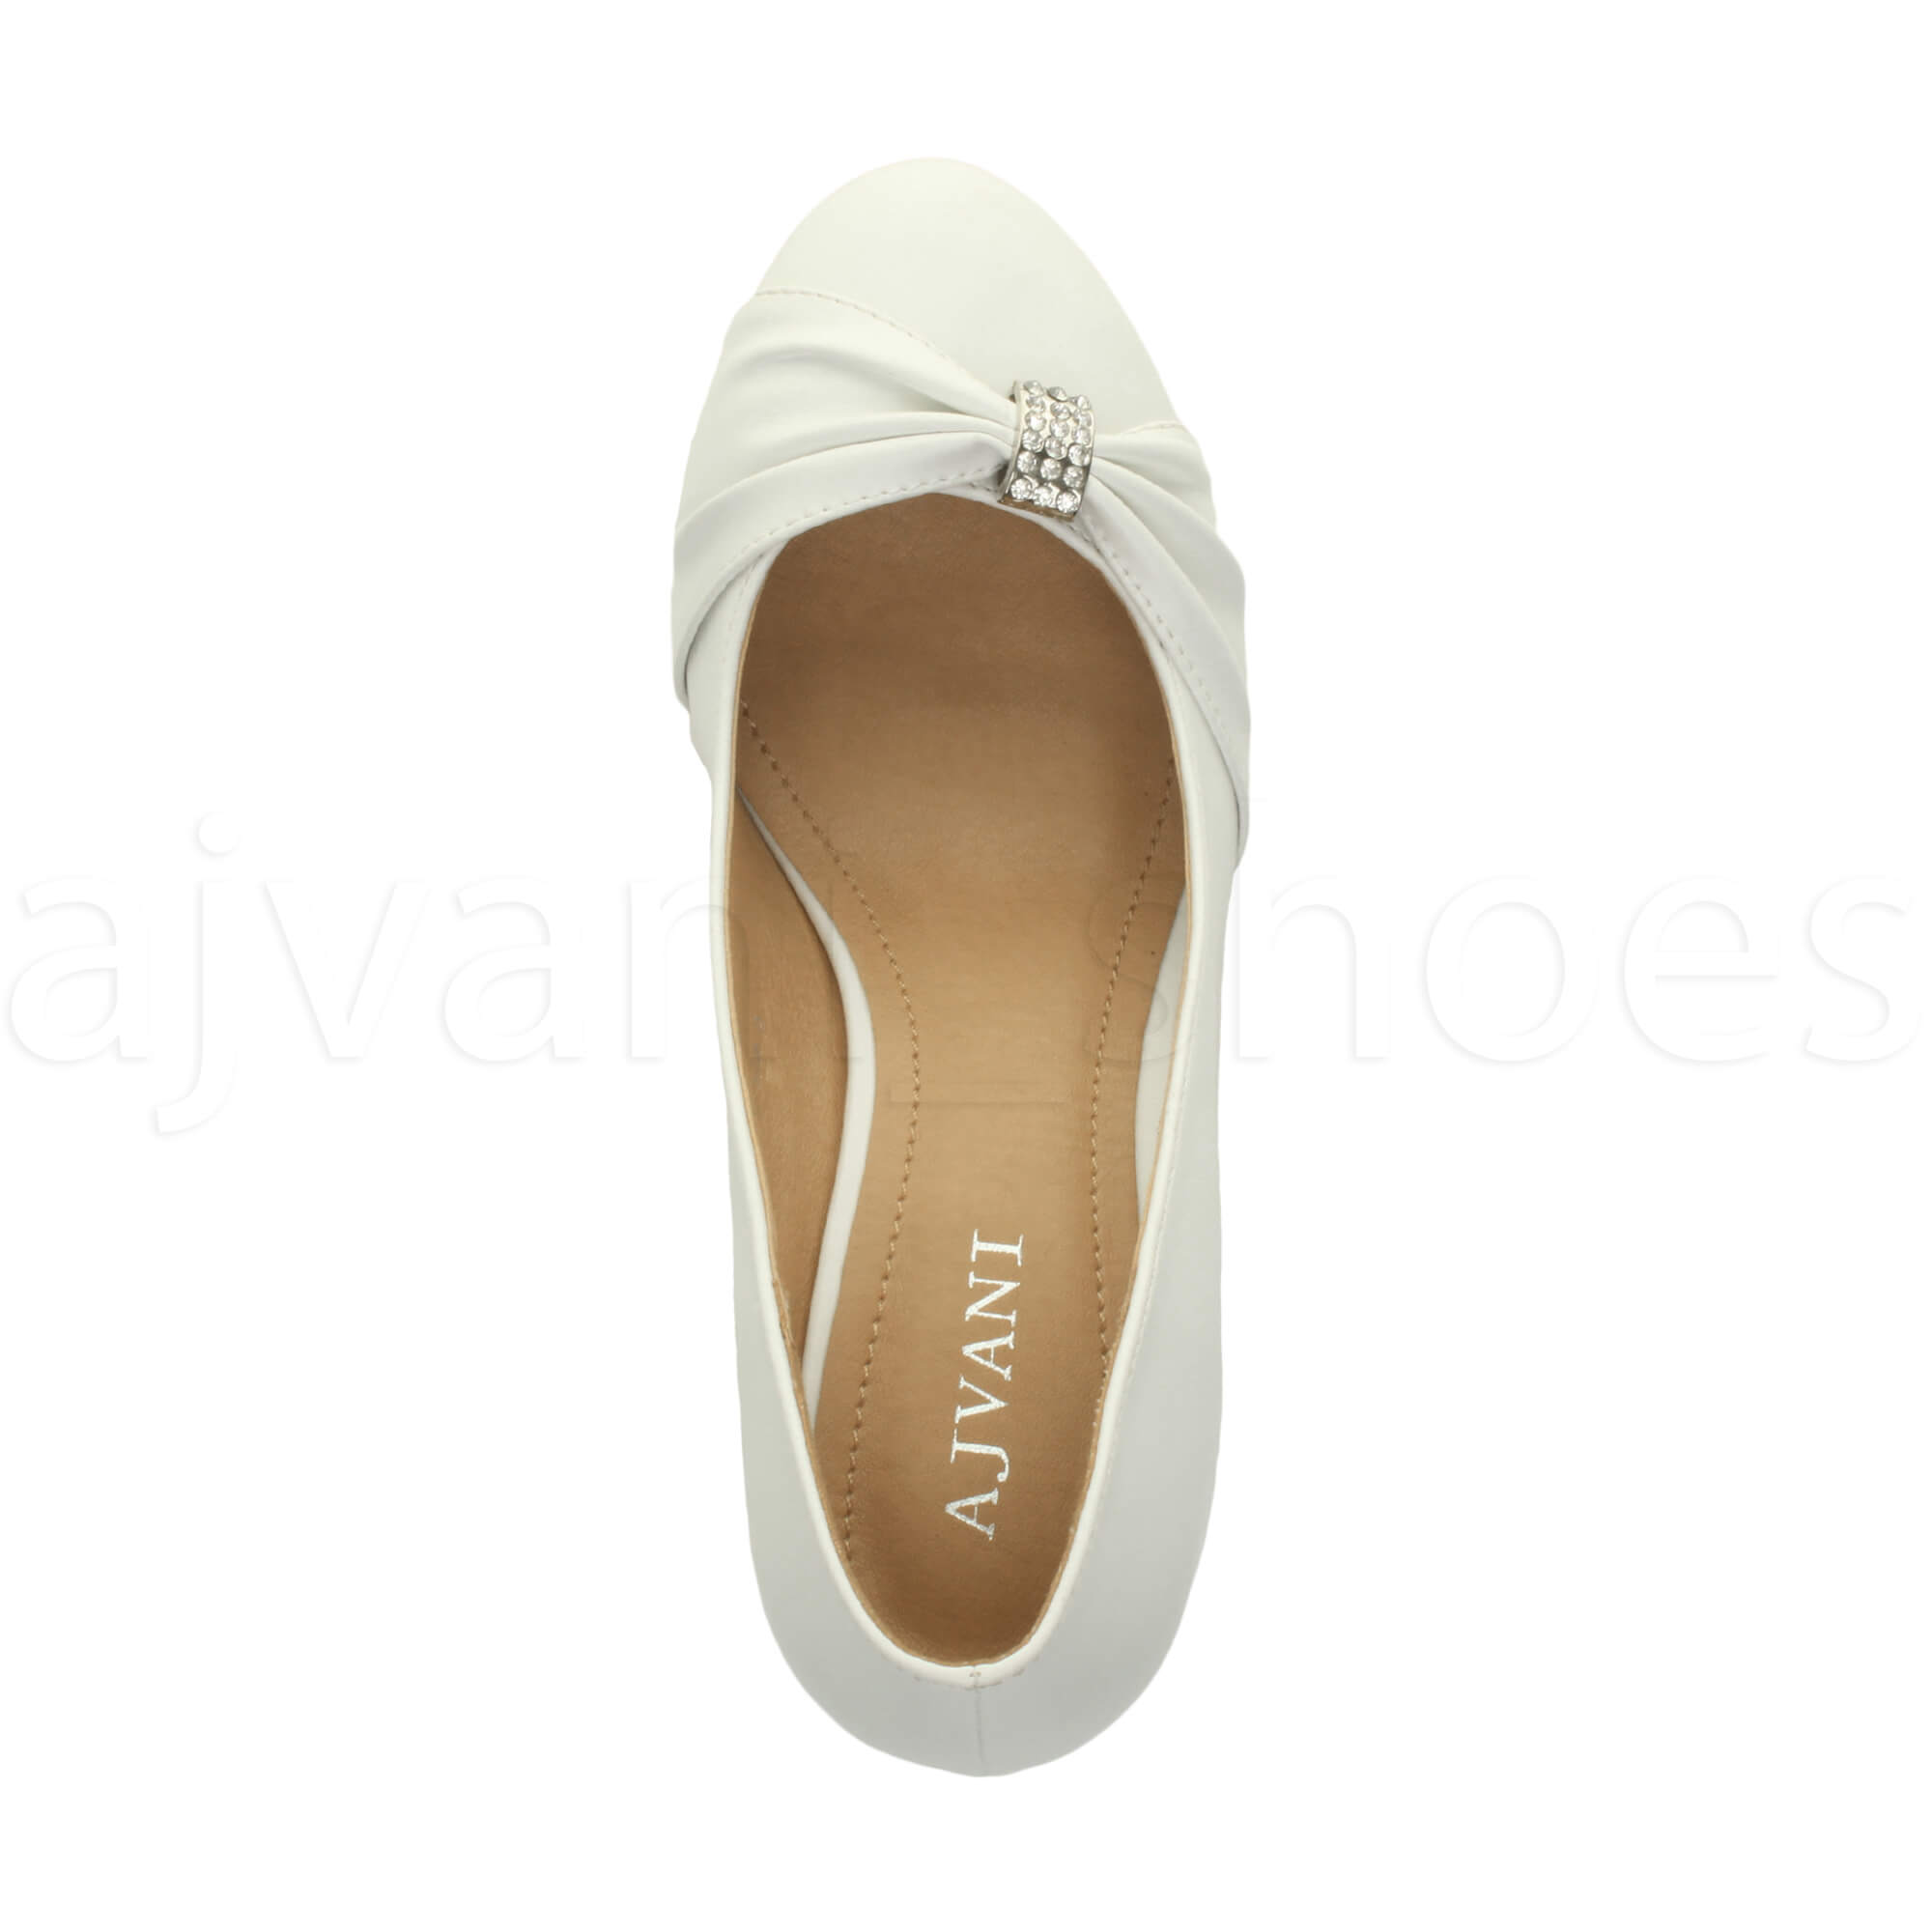 WOMENS-LADIES-MID-HEEL-RUCHED-DIAMANTE-WEDDING-PROM-EVENING-COURT-SHOES-SIZE thumbnail 104